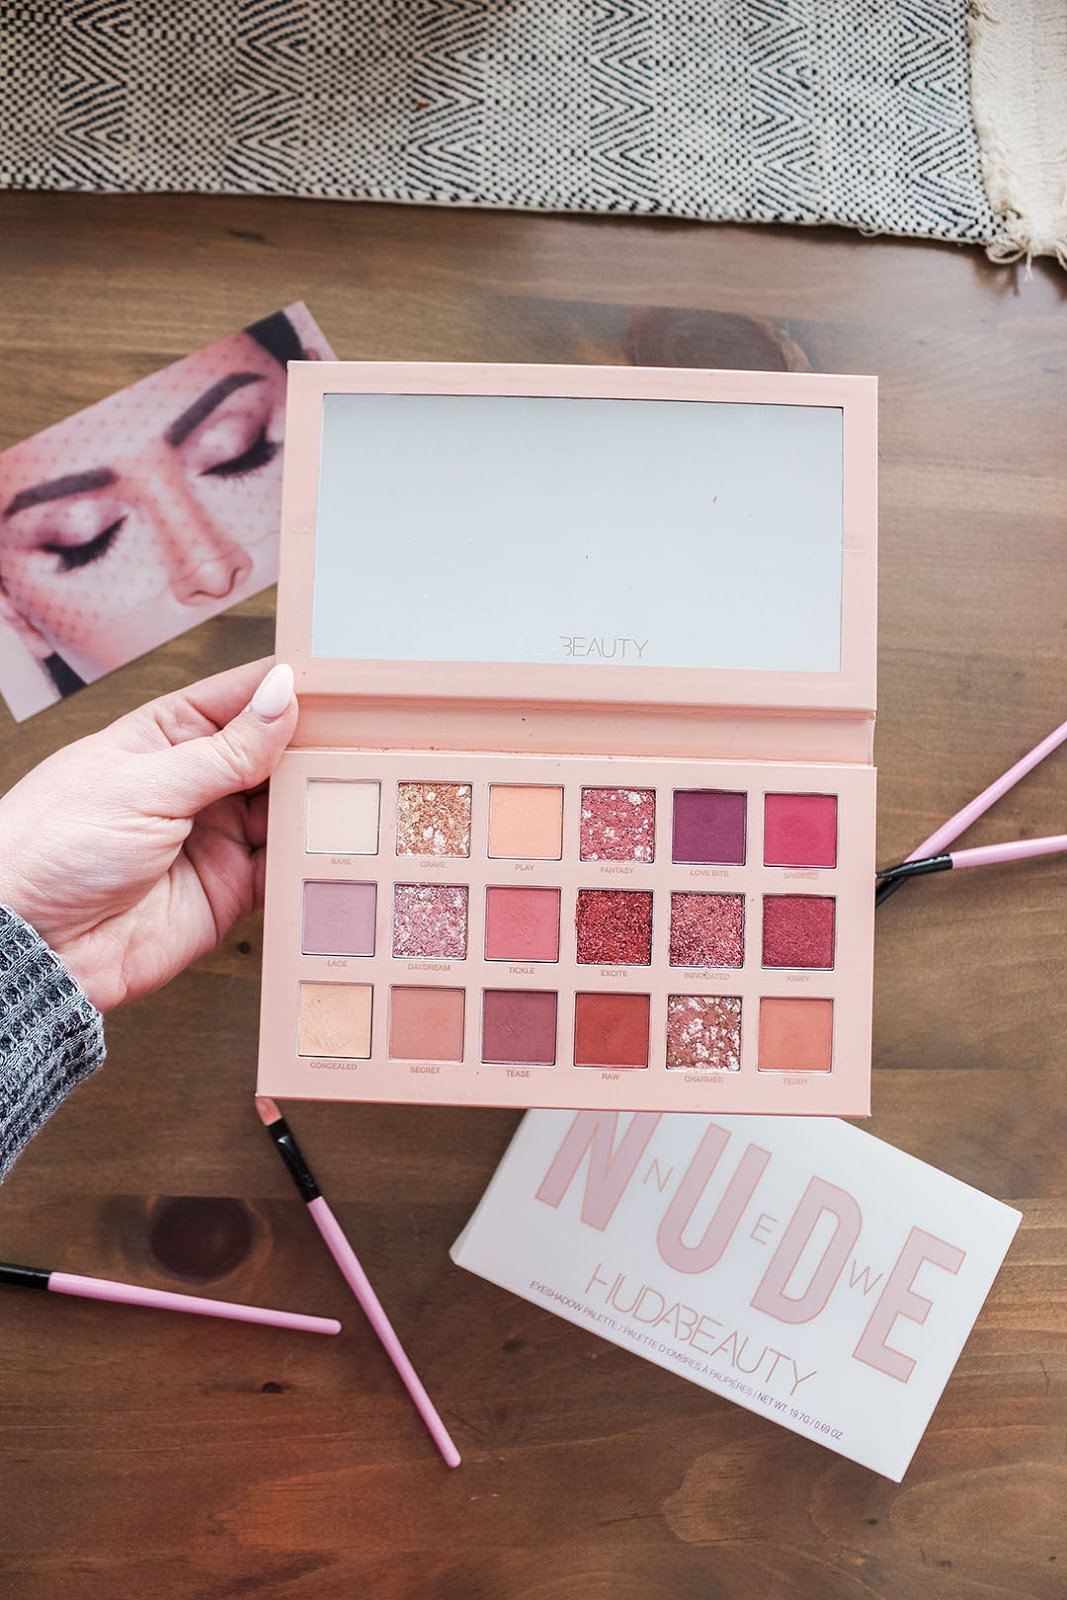 XO, Noelle reviews the HUDA Beauty The New Nudes Palette